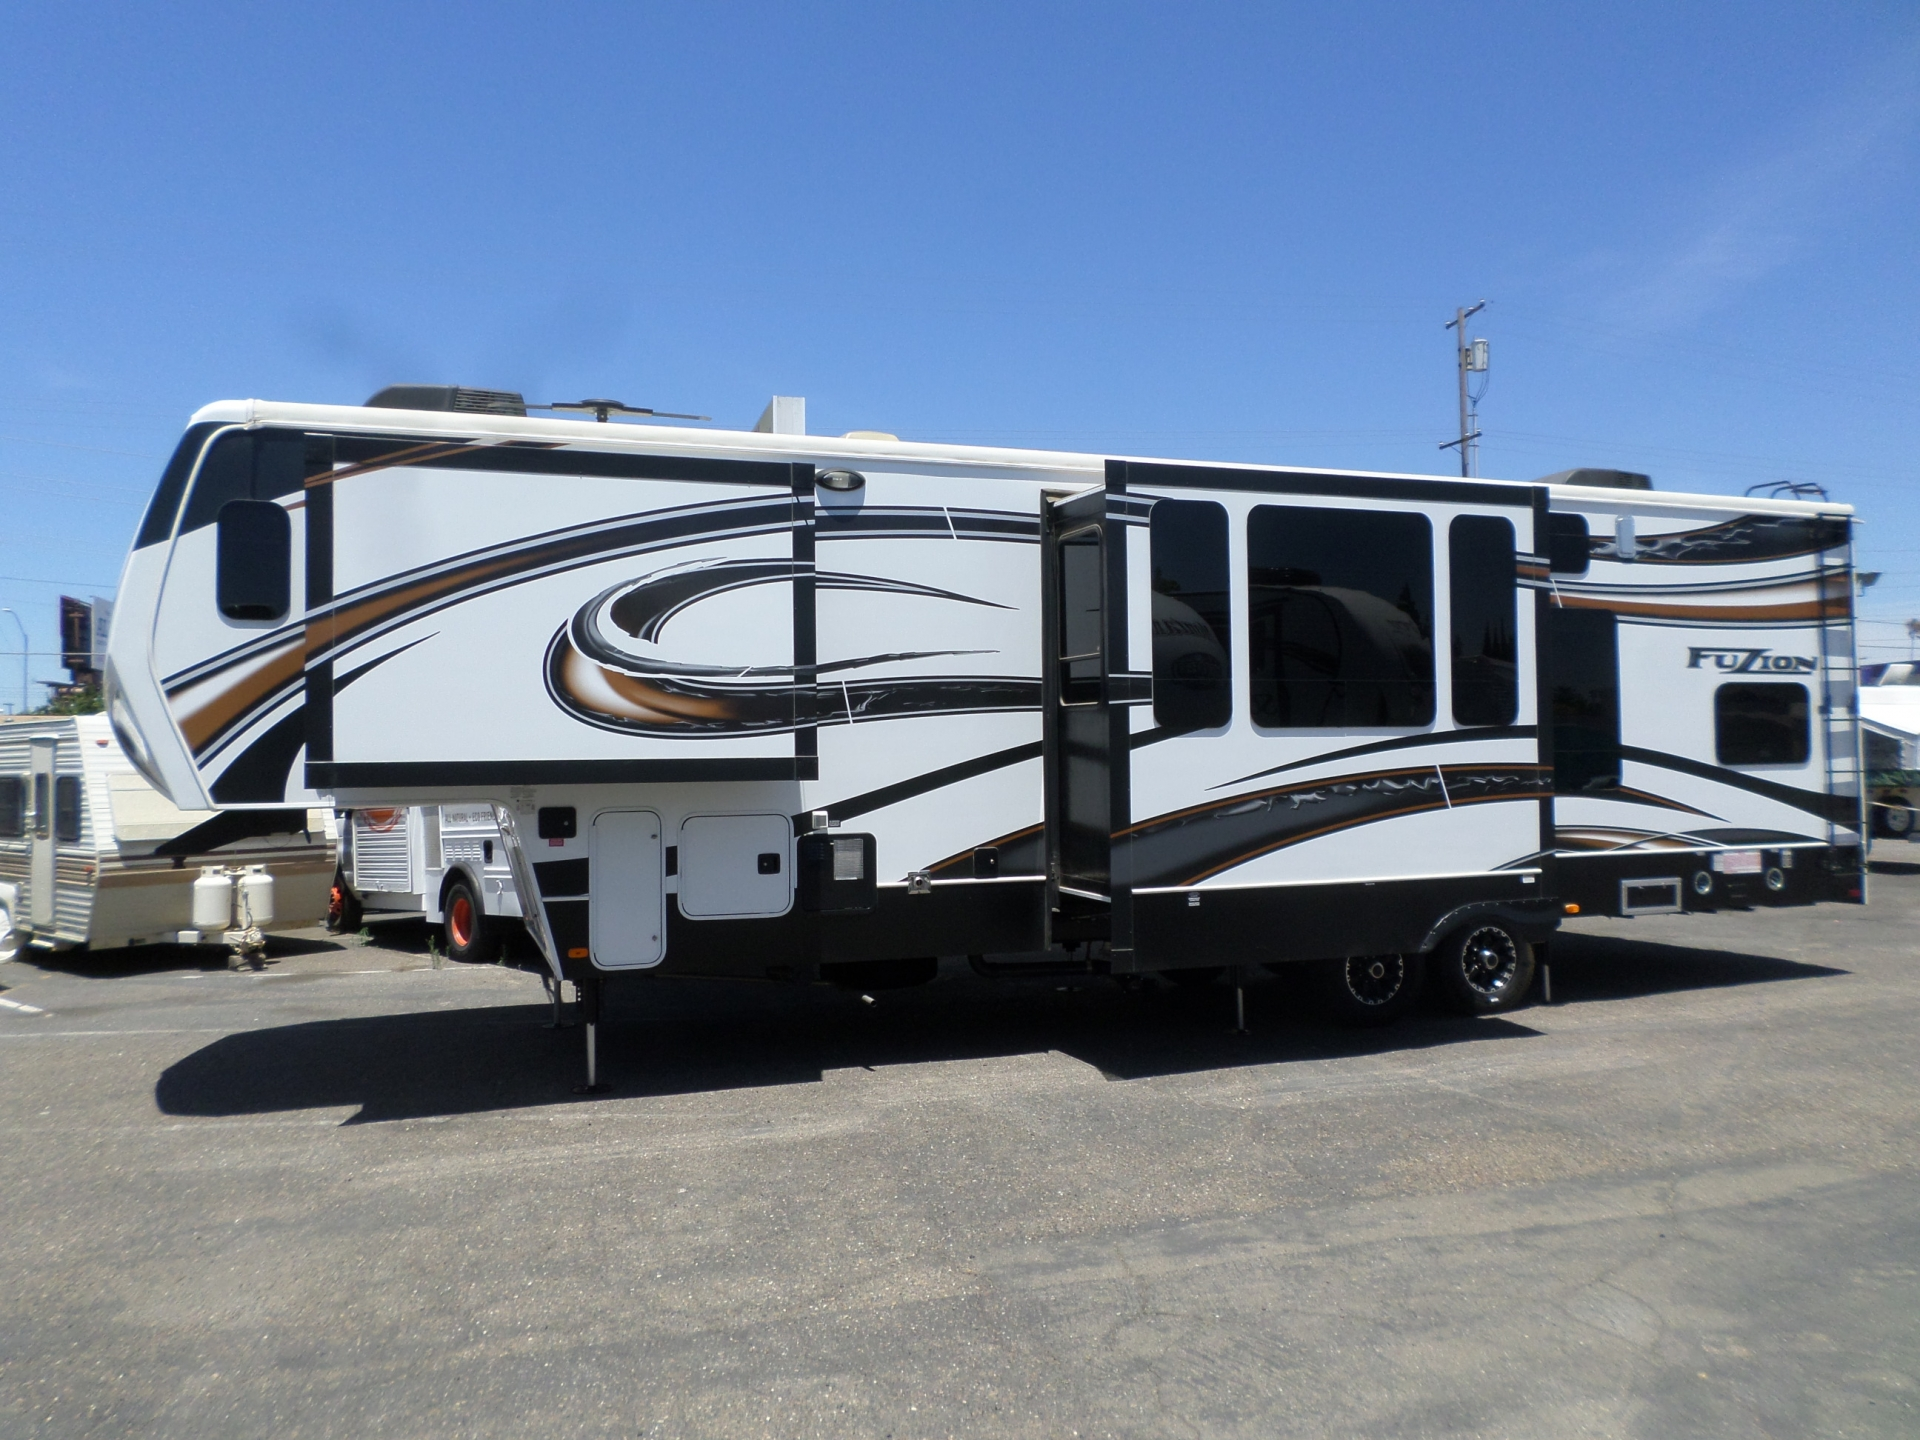 Keystone Fuzion 331 5th Wheel Toy Hauler 2014